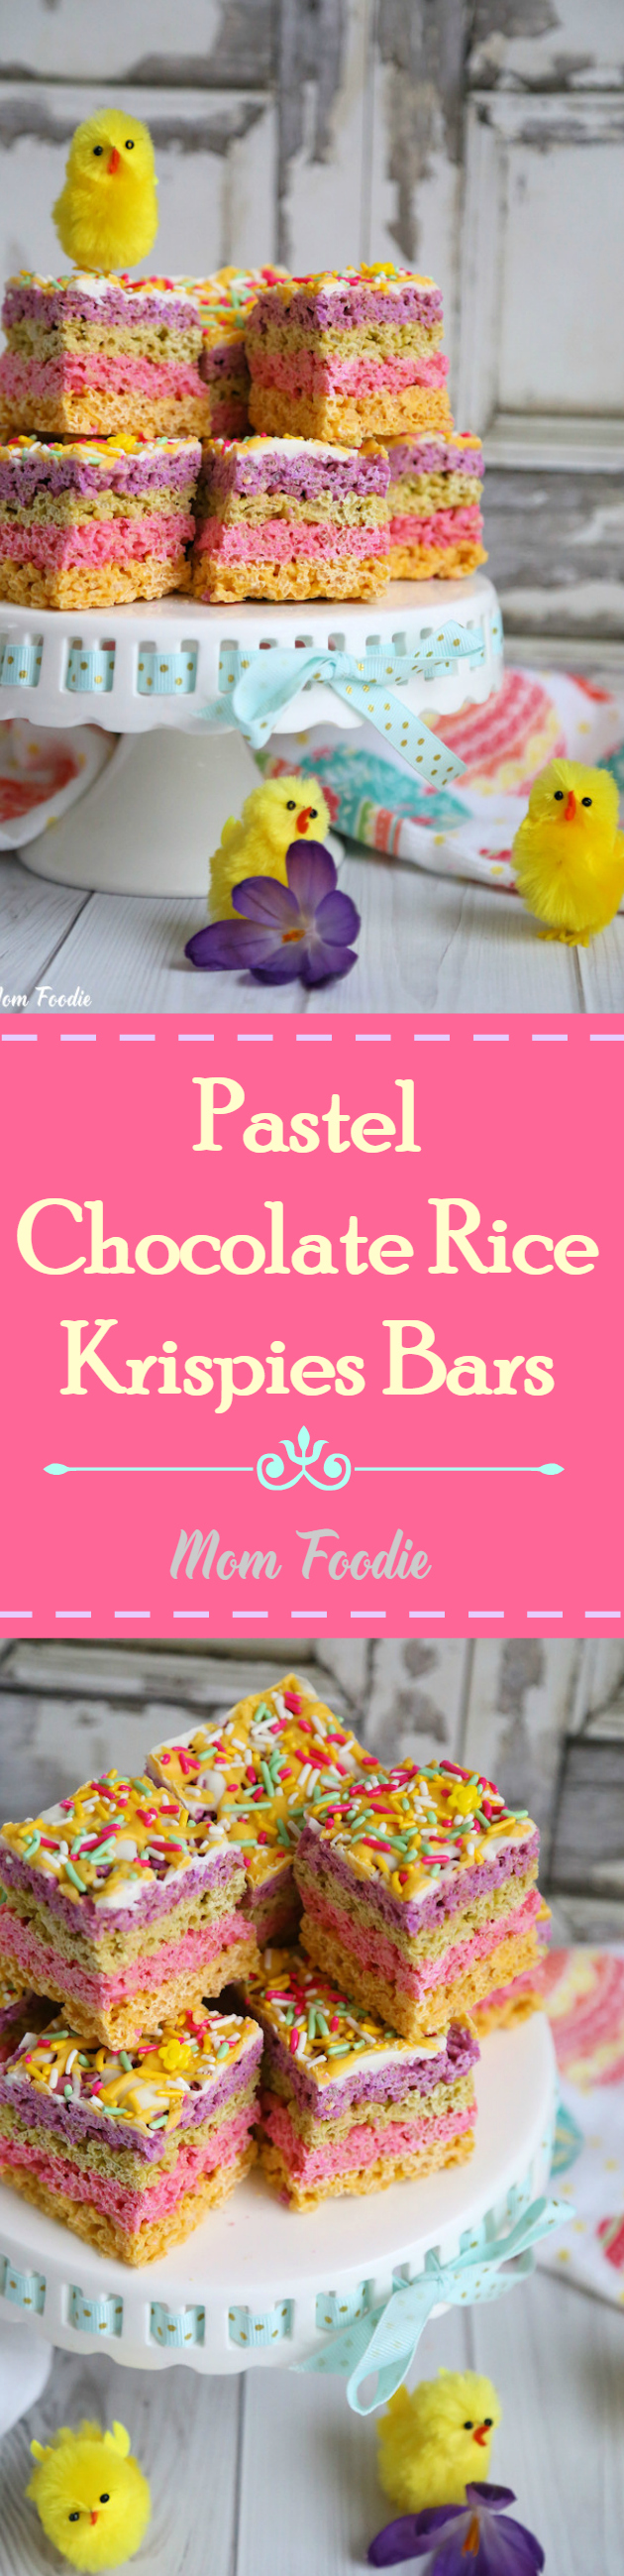 Easter Rice Krispies Treats - Pretty yet easy treat to make for Easter!